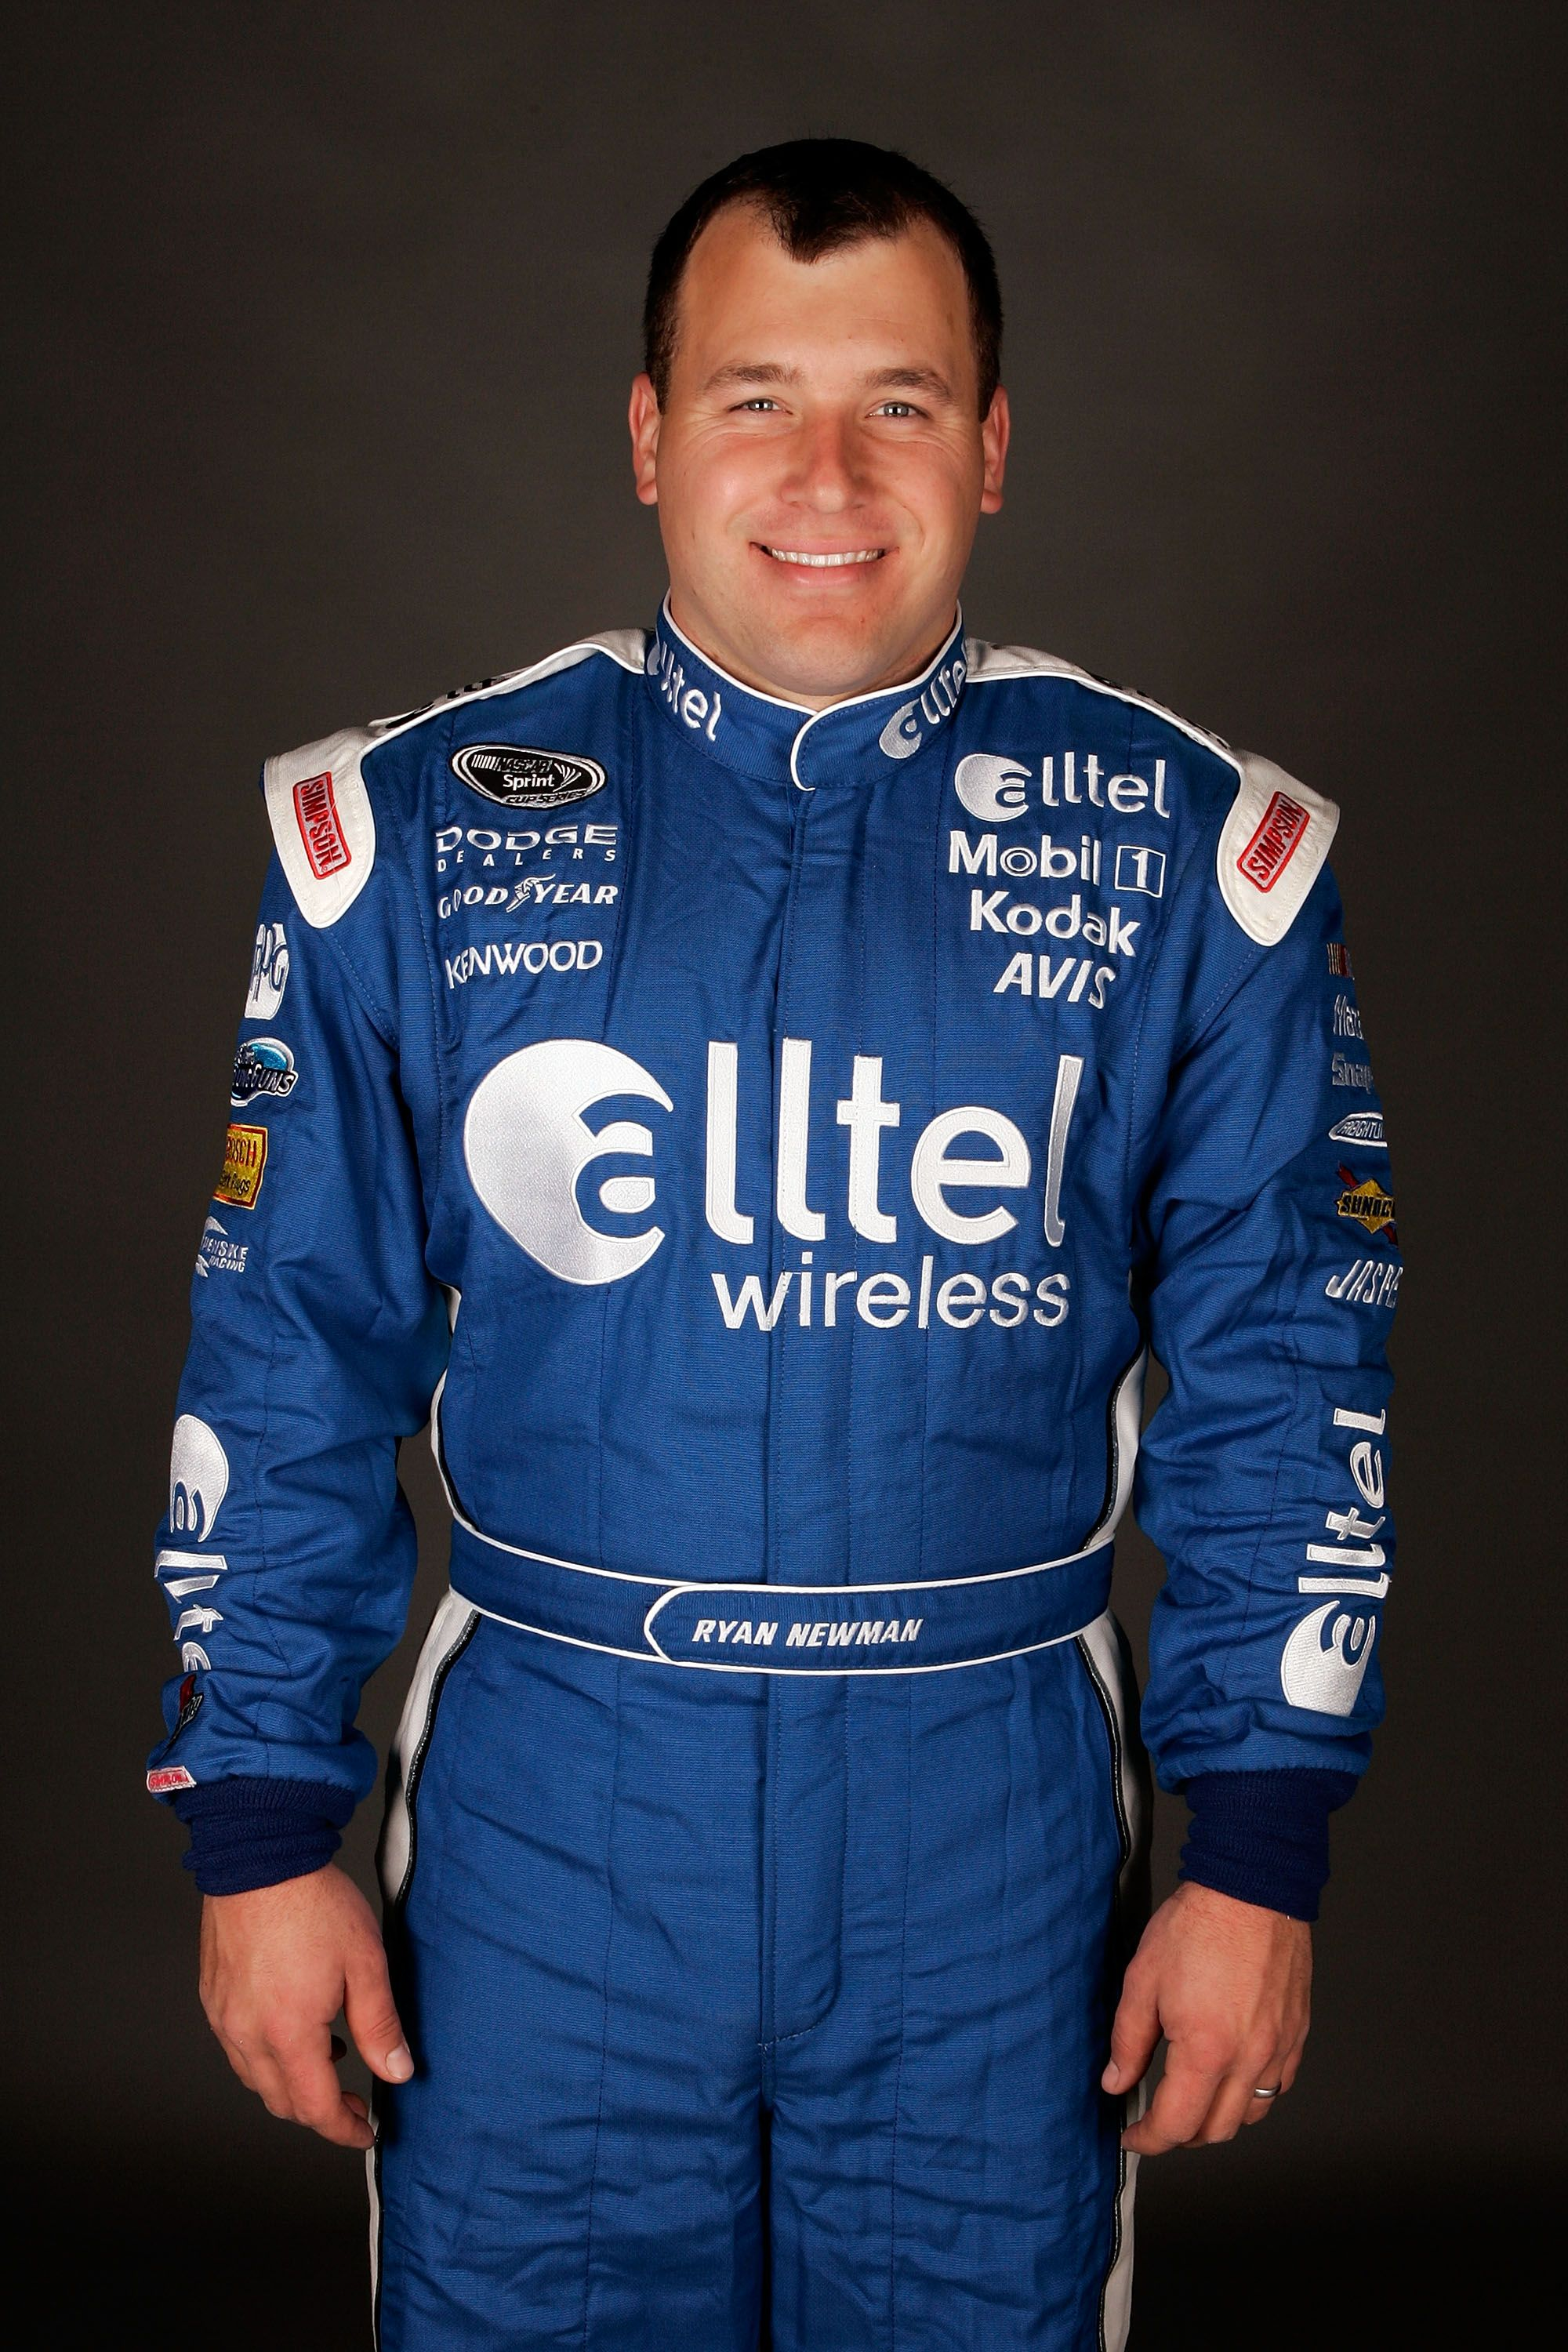 Ryan Newman poses for a photo during the NASCAR Sprint Cup Series media day at Daytona International Speedway on February 7, 2008 in Daytona, Florida. | Source: Getty Images